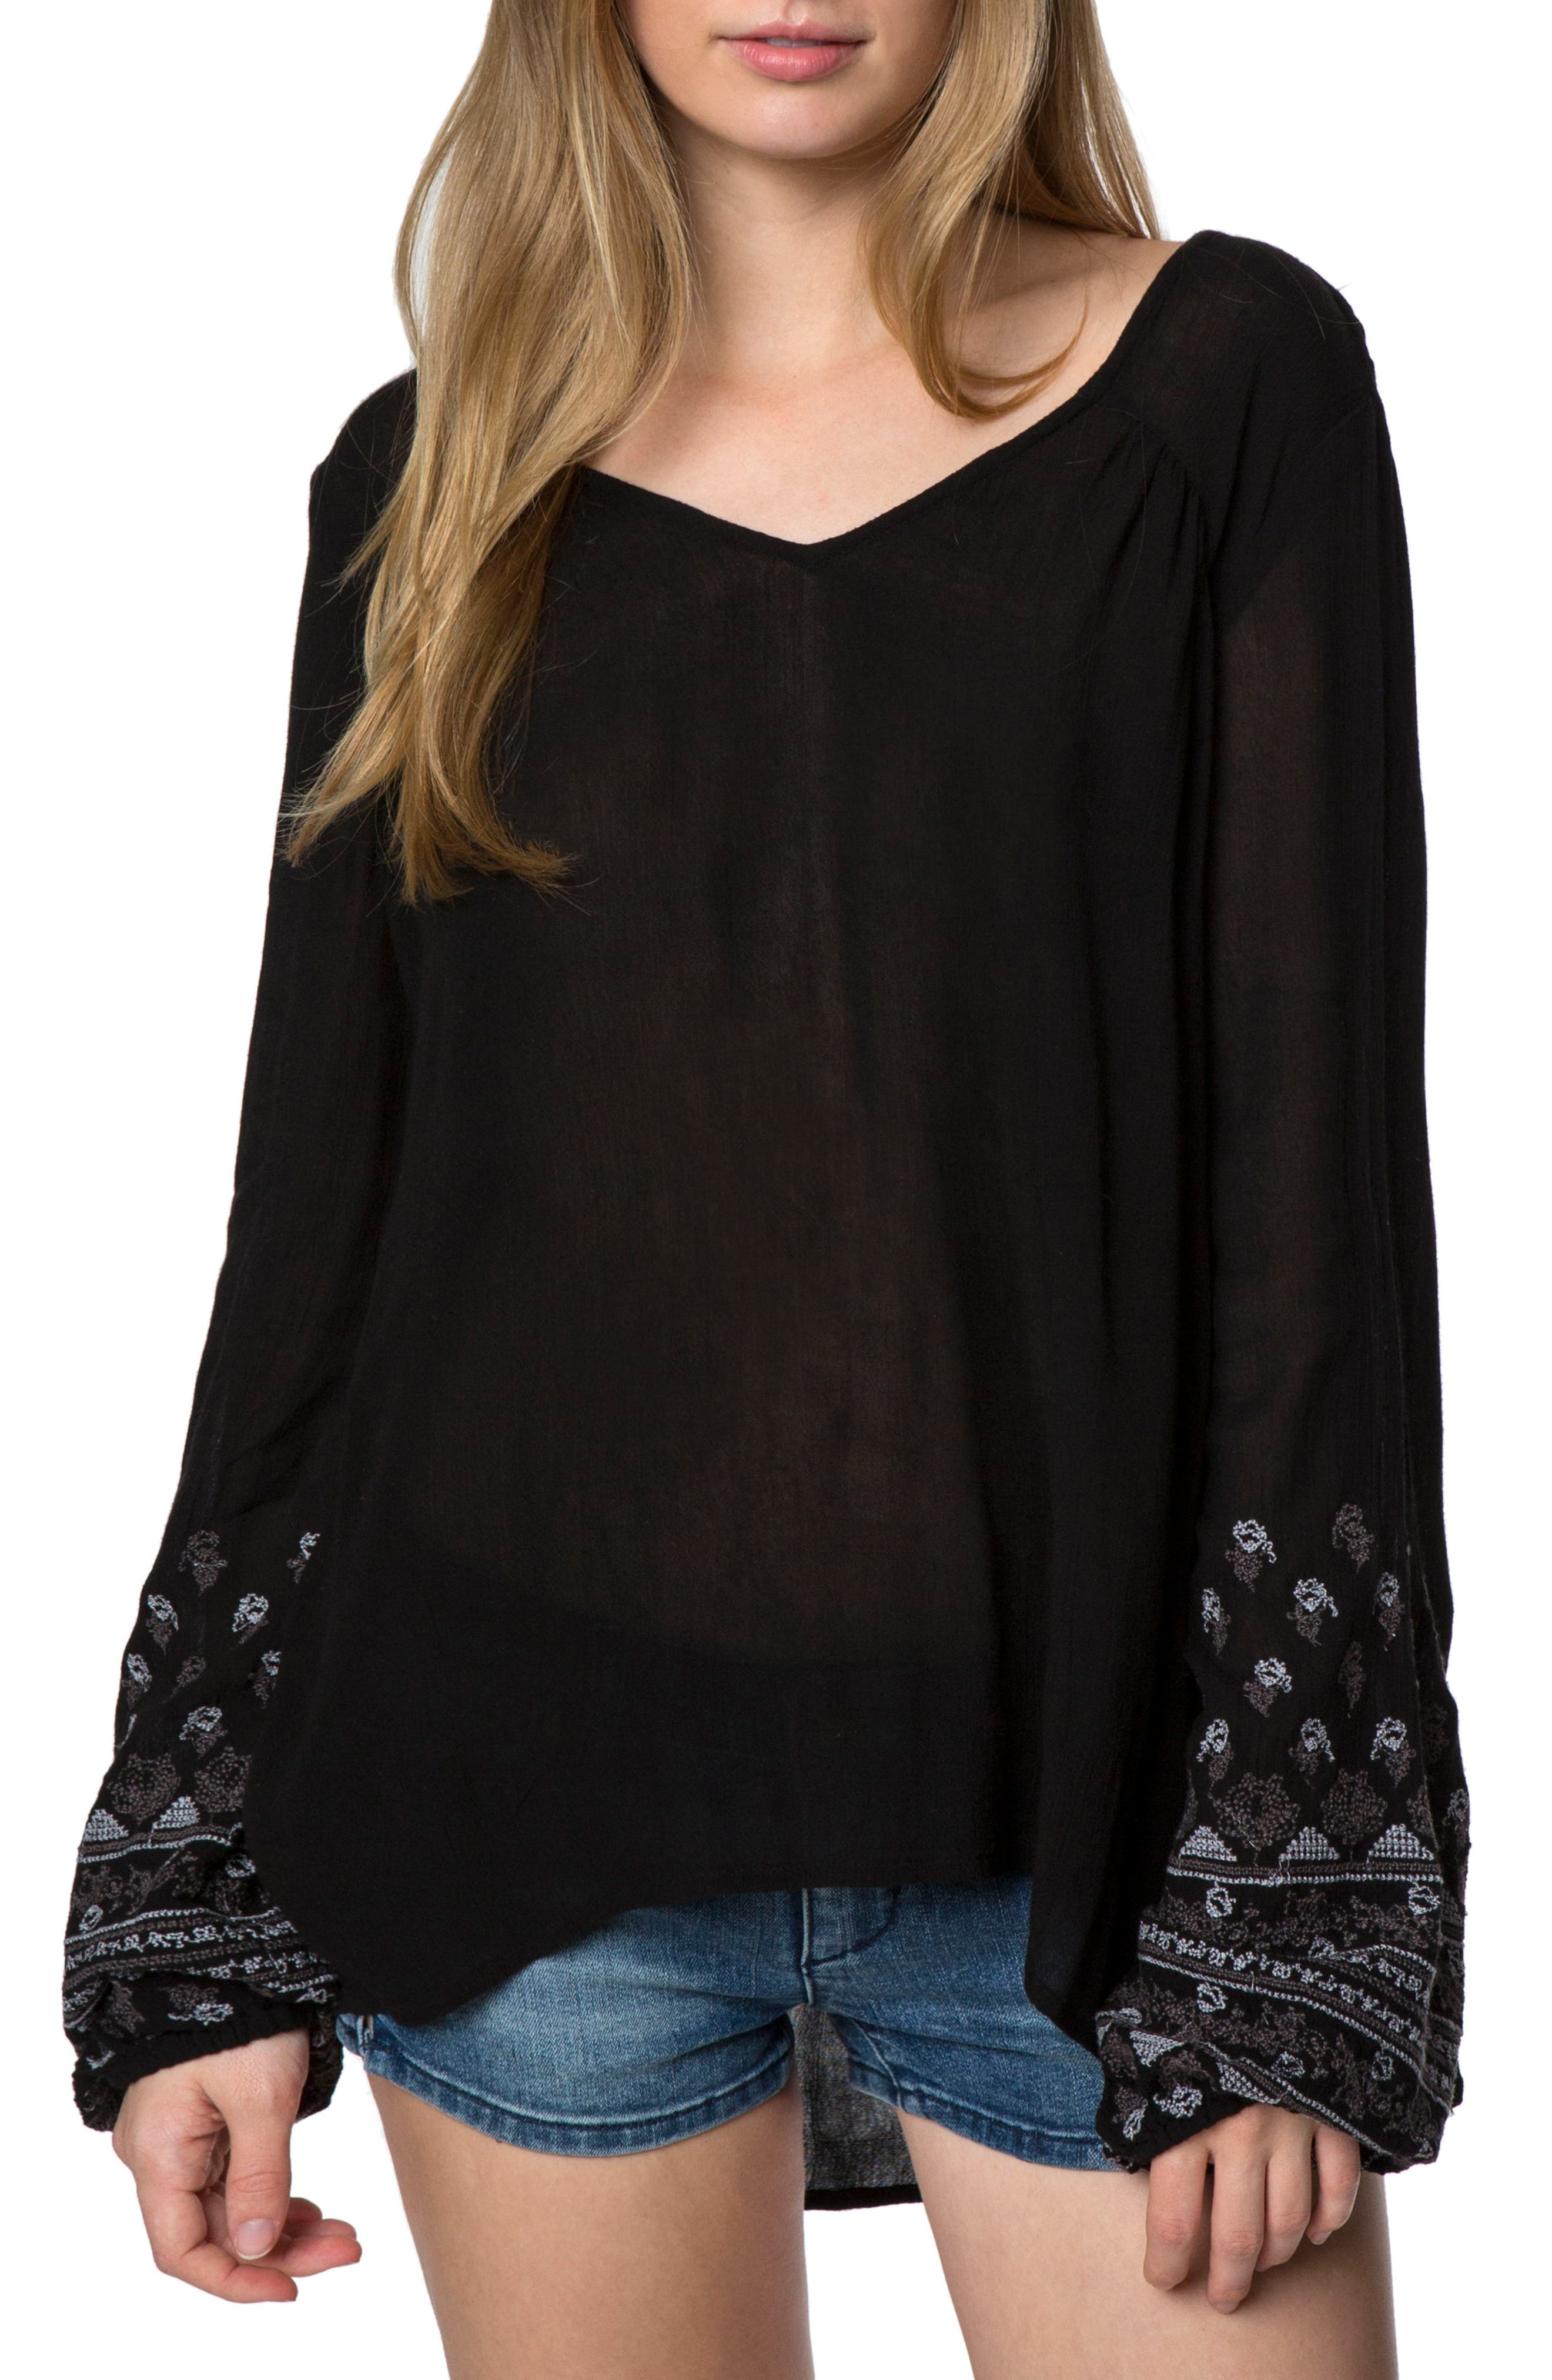 Alternate Image 1 Selected - O'Neill Mariana Embroidered Top